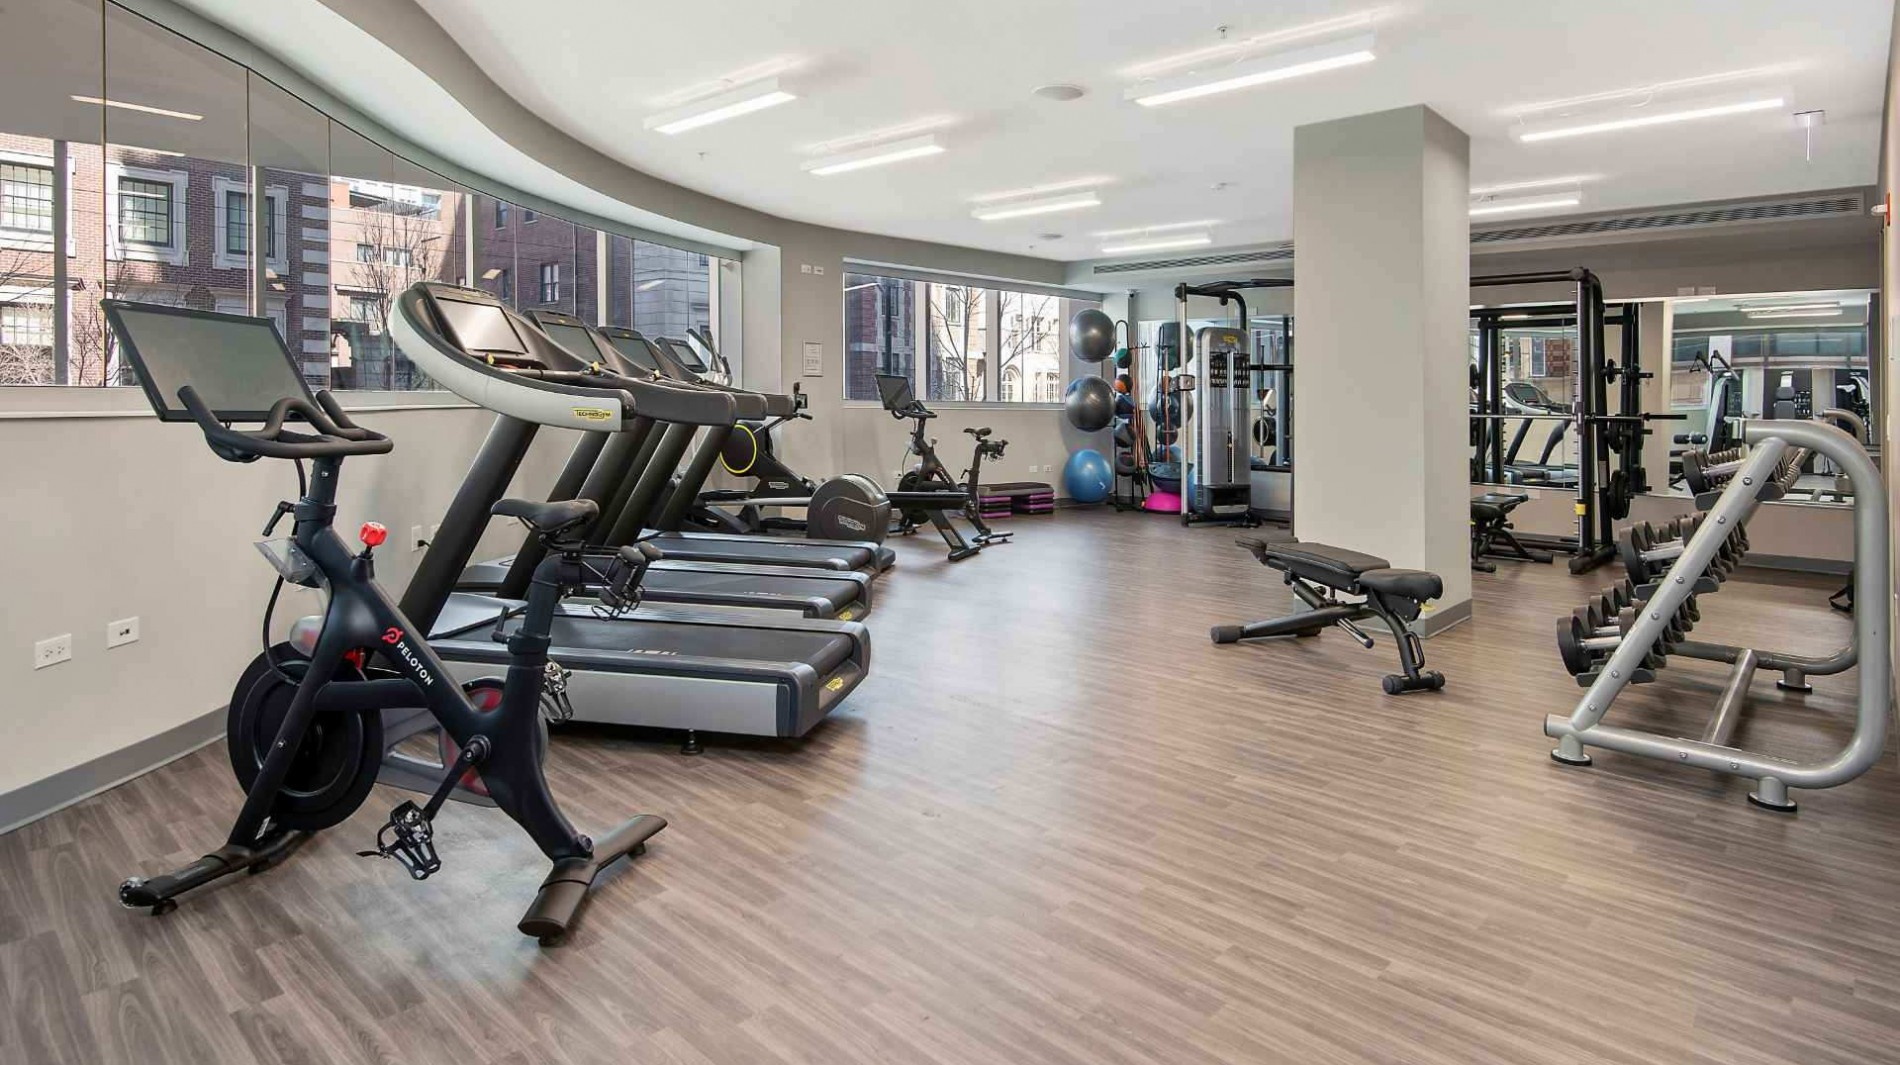 Resident fitness center with array of cardio and weightlifting equipment.